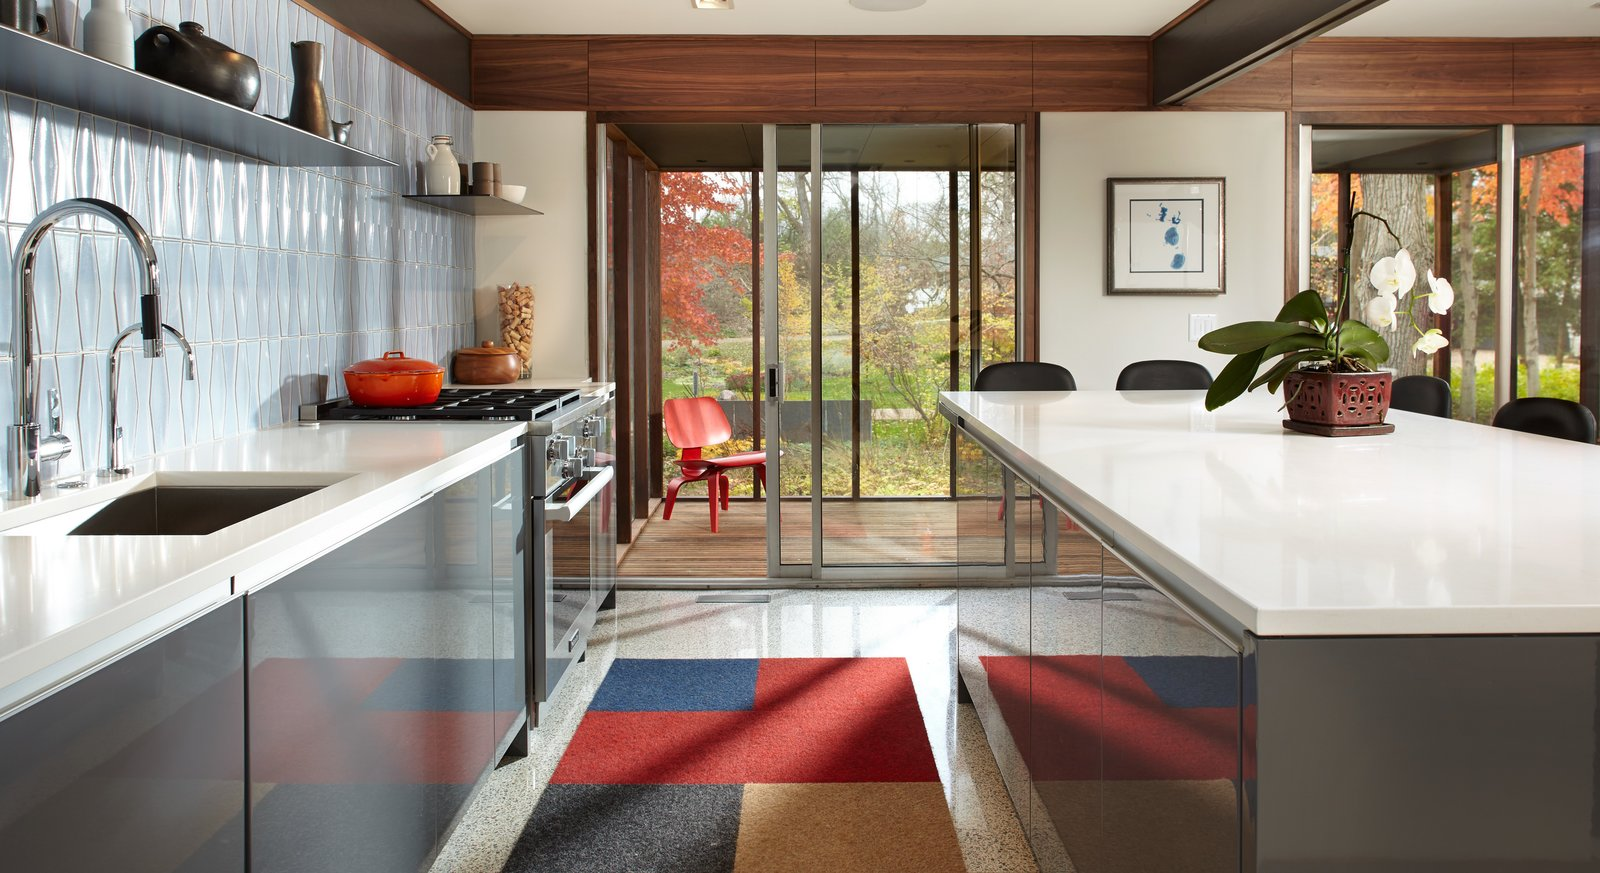 Kitchen, Ceramic Tile Backsplashe, Engineered Quartz Counter, Undermount Sink, Range, and Colorful Cabinet  South Tyrol Mid-Century by Peterssen/Keller Architecture